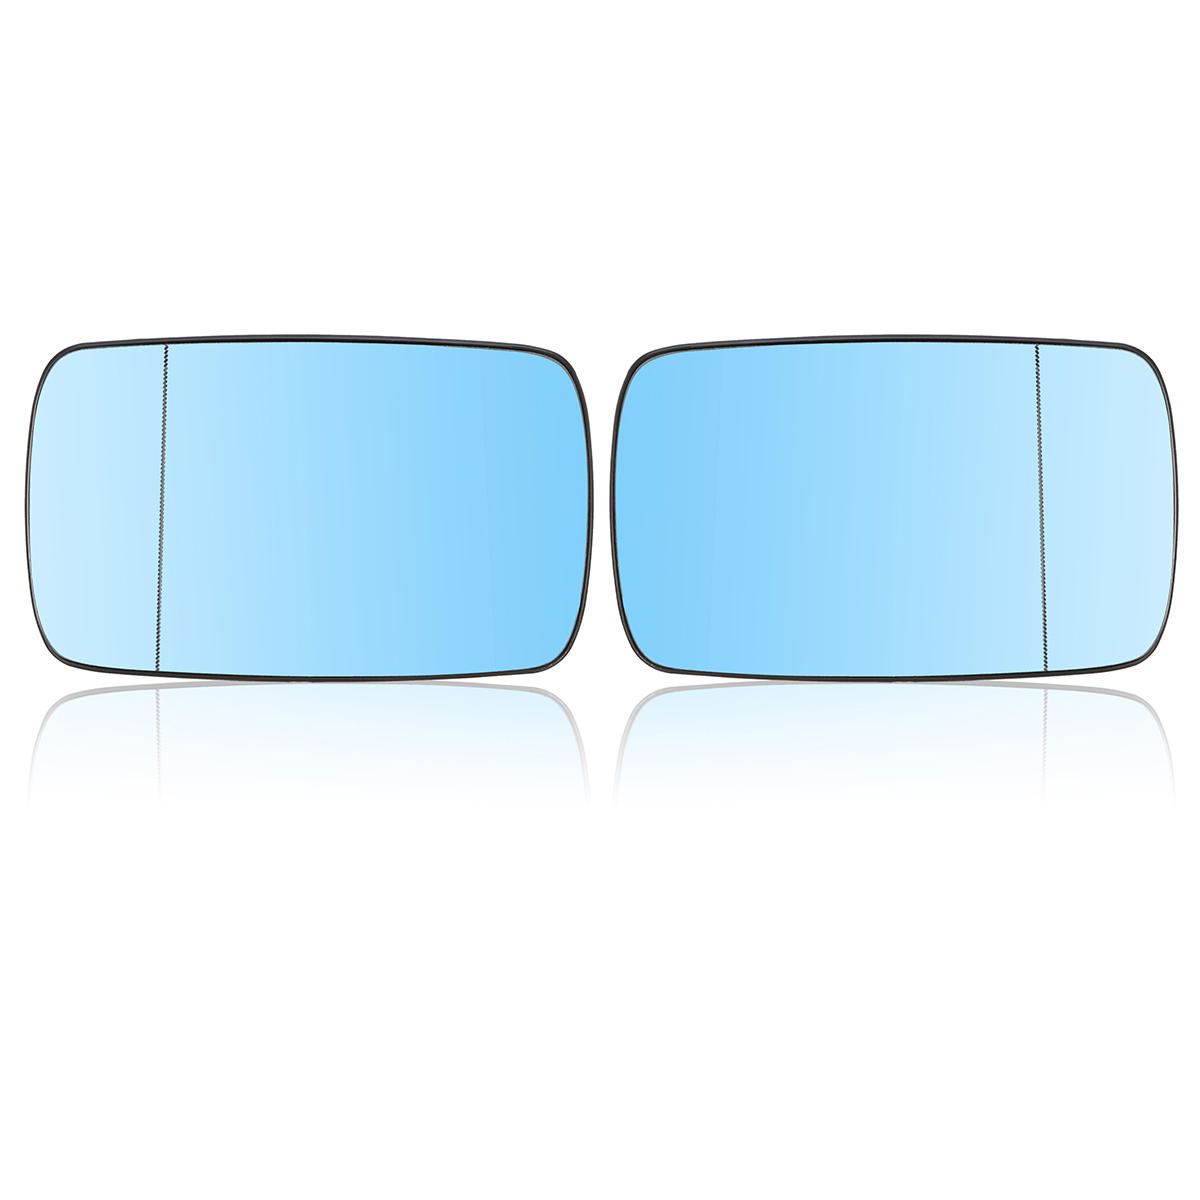 Mirror Glass Front Right Passenger Side Blue for BMW 3 Series E46 5 Series E39